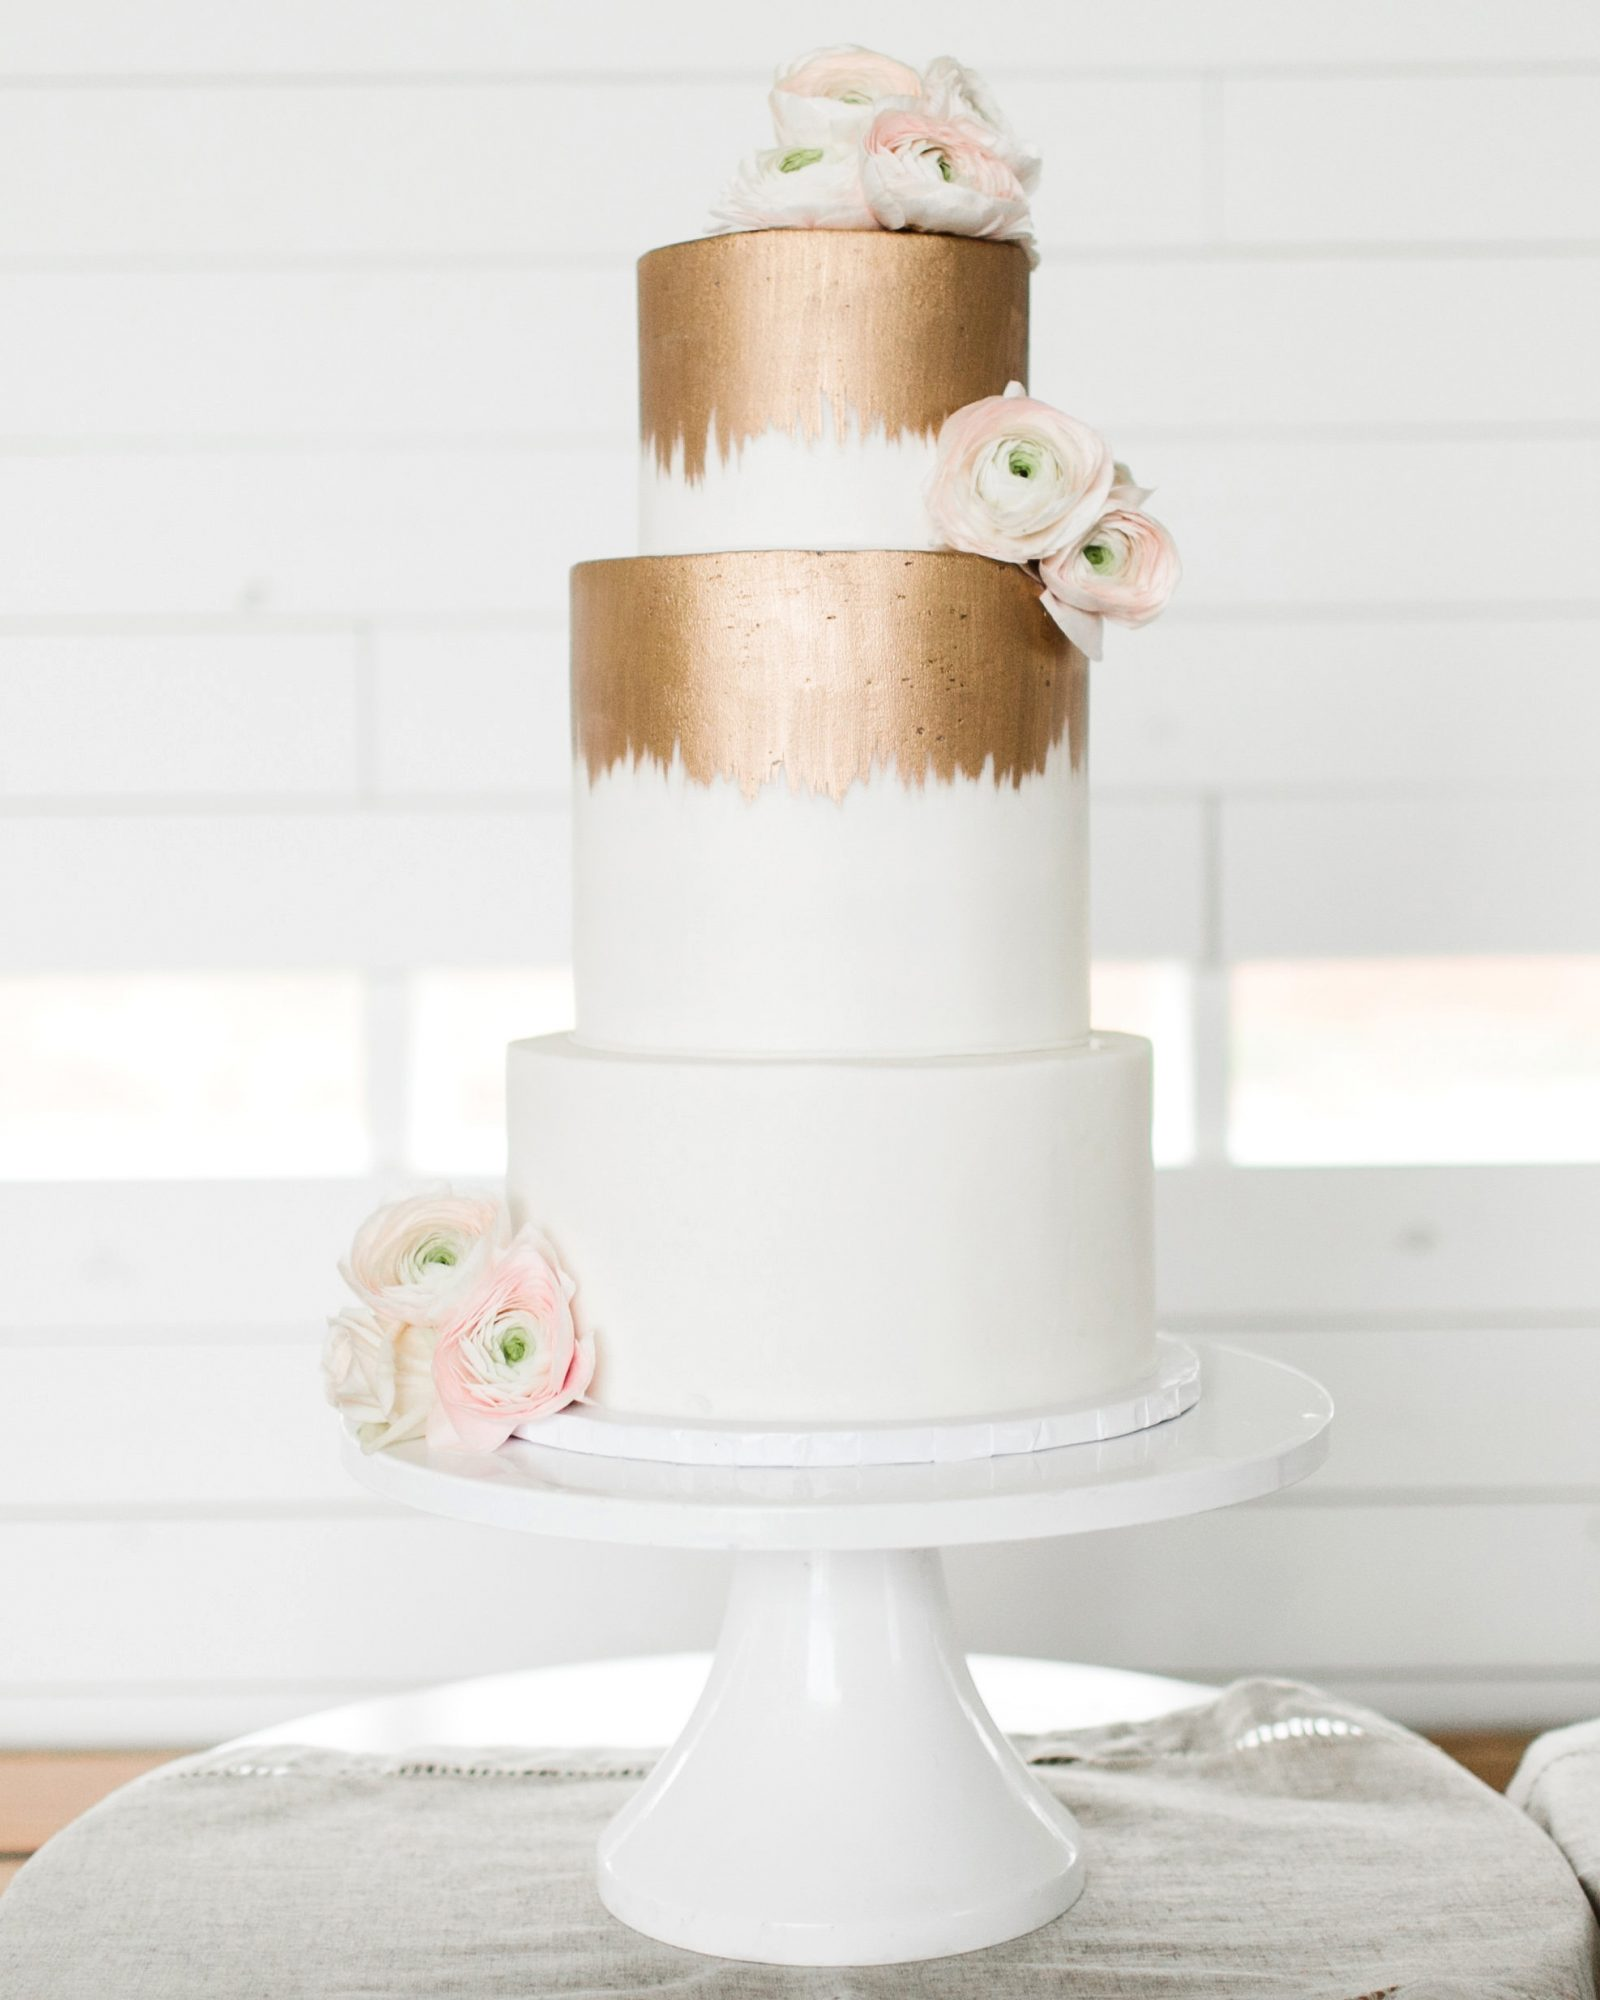 The cake, by Sweet Treats Bakery in Austin, was a white-chocolate flavored confection with raspberry filling. It was gilded in bronze—matching the metallic-and-white color scheme—with a few ranunculus on each tier.